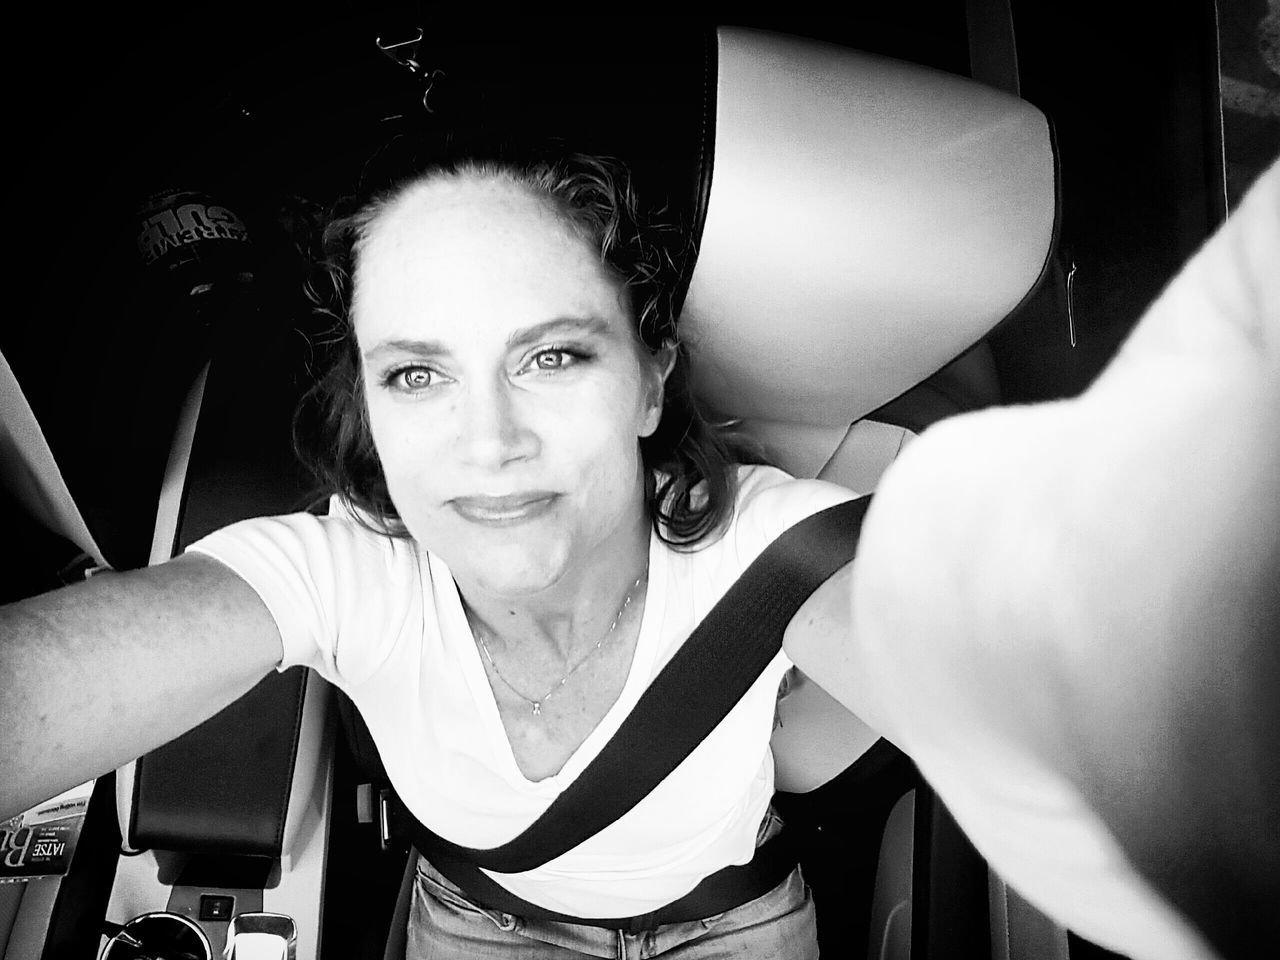 High Angle View Of Smiling Mid Adult Woman With Arms Raised Sitting In Car